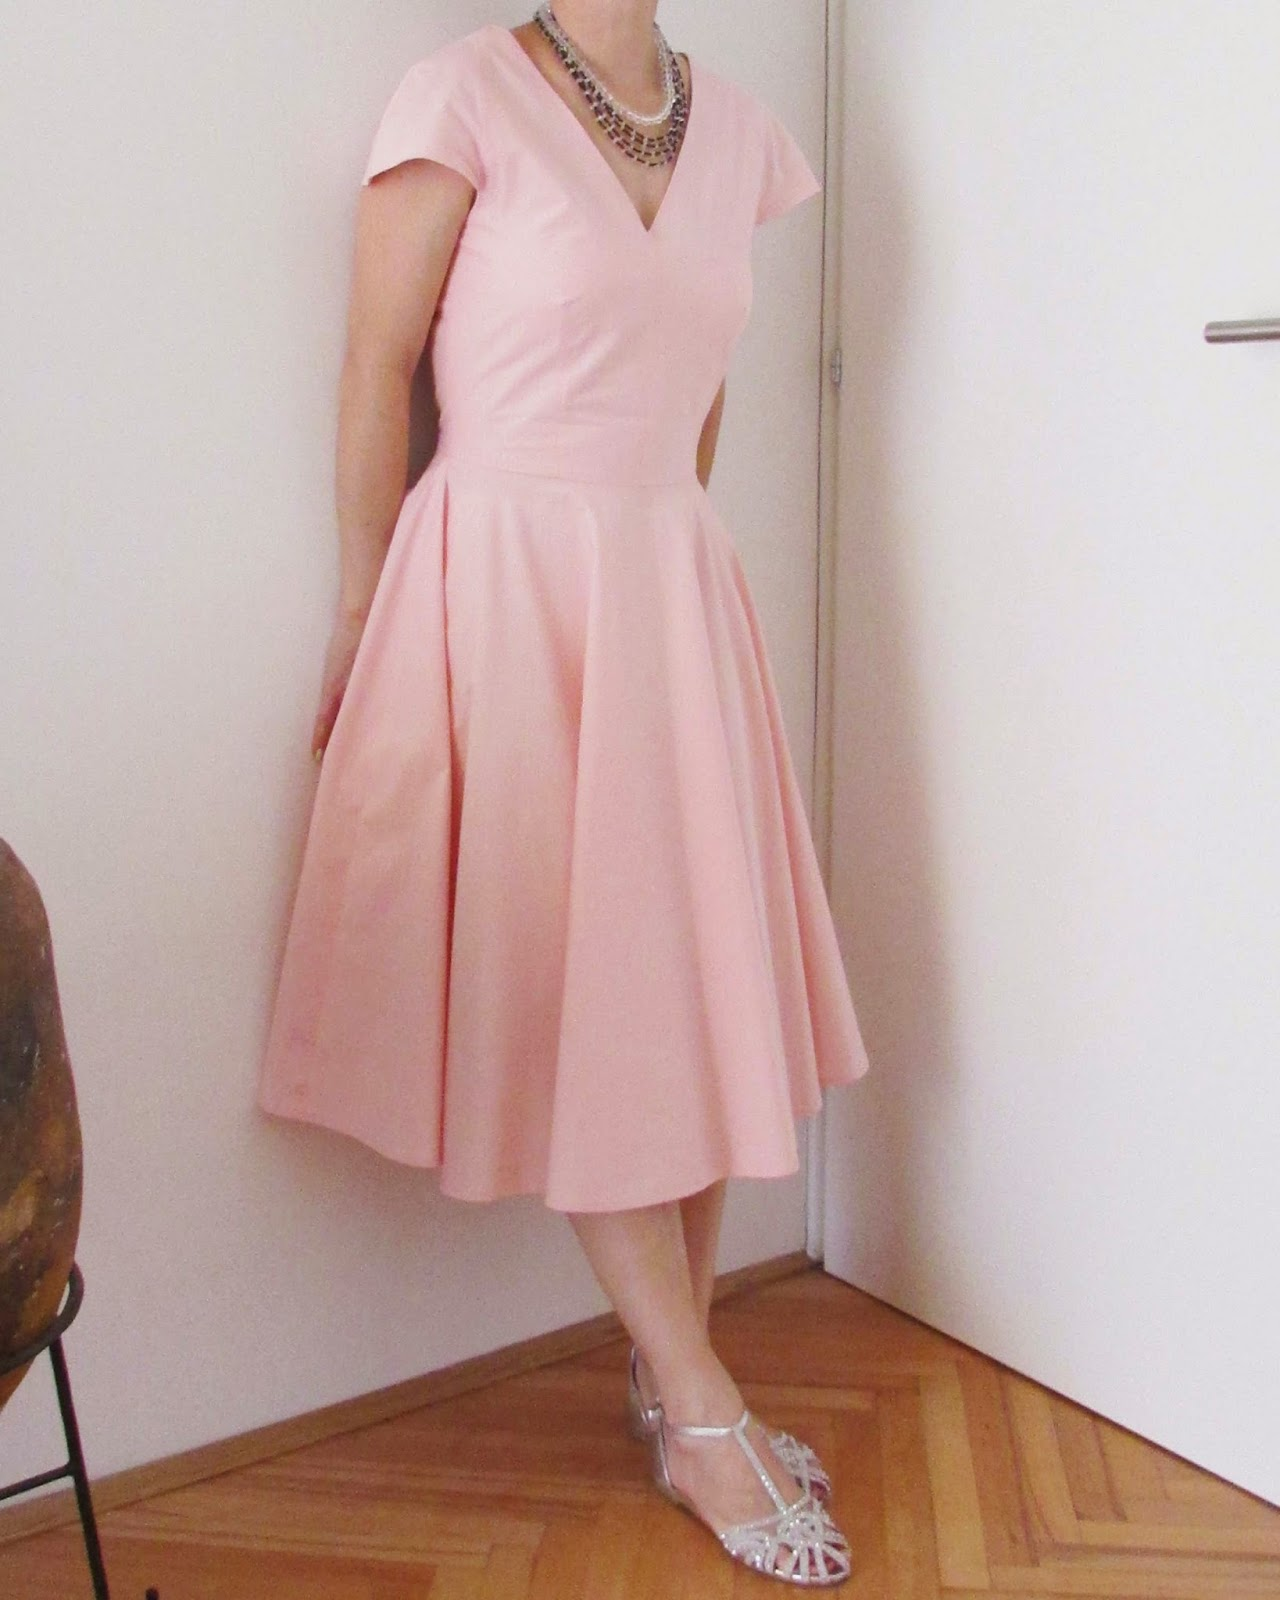 http://ladylinaland.blogspot.com/2014/08/ladylike-dress.html